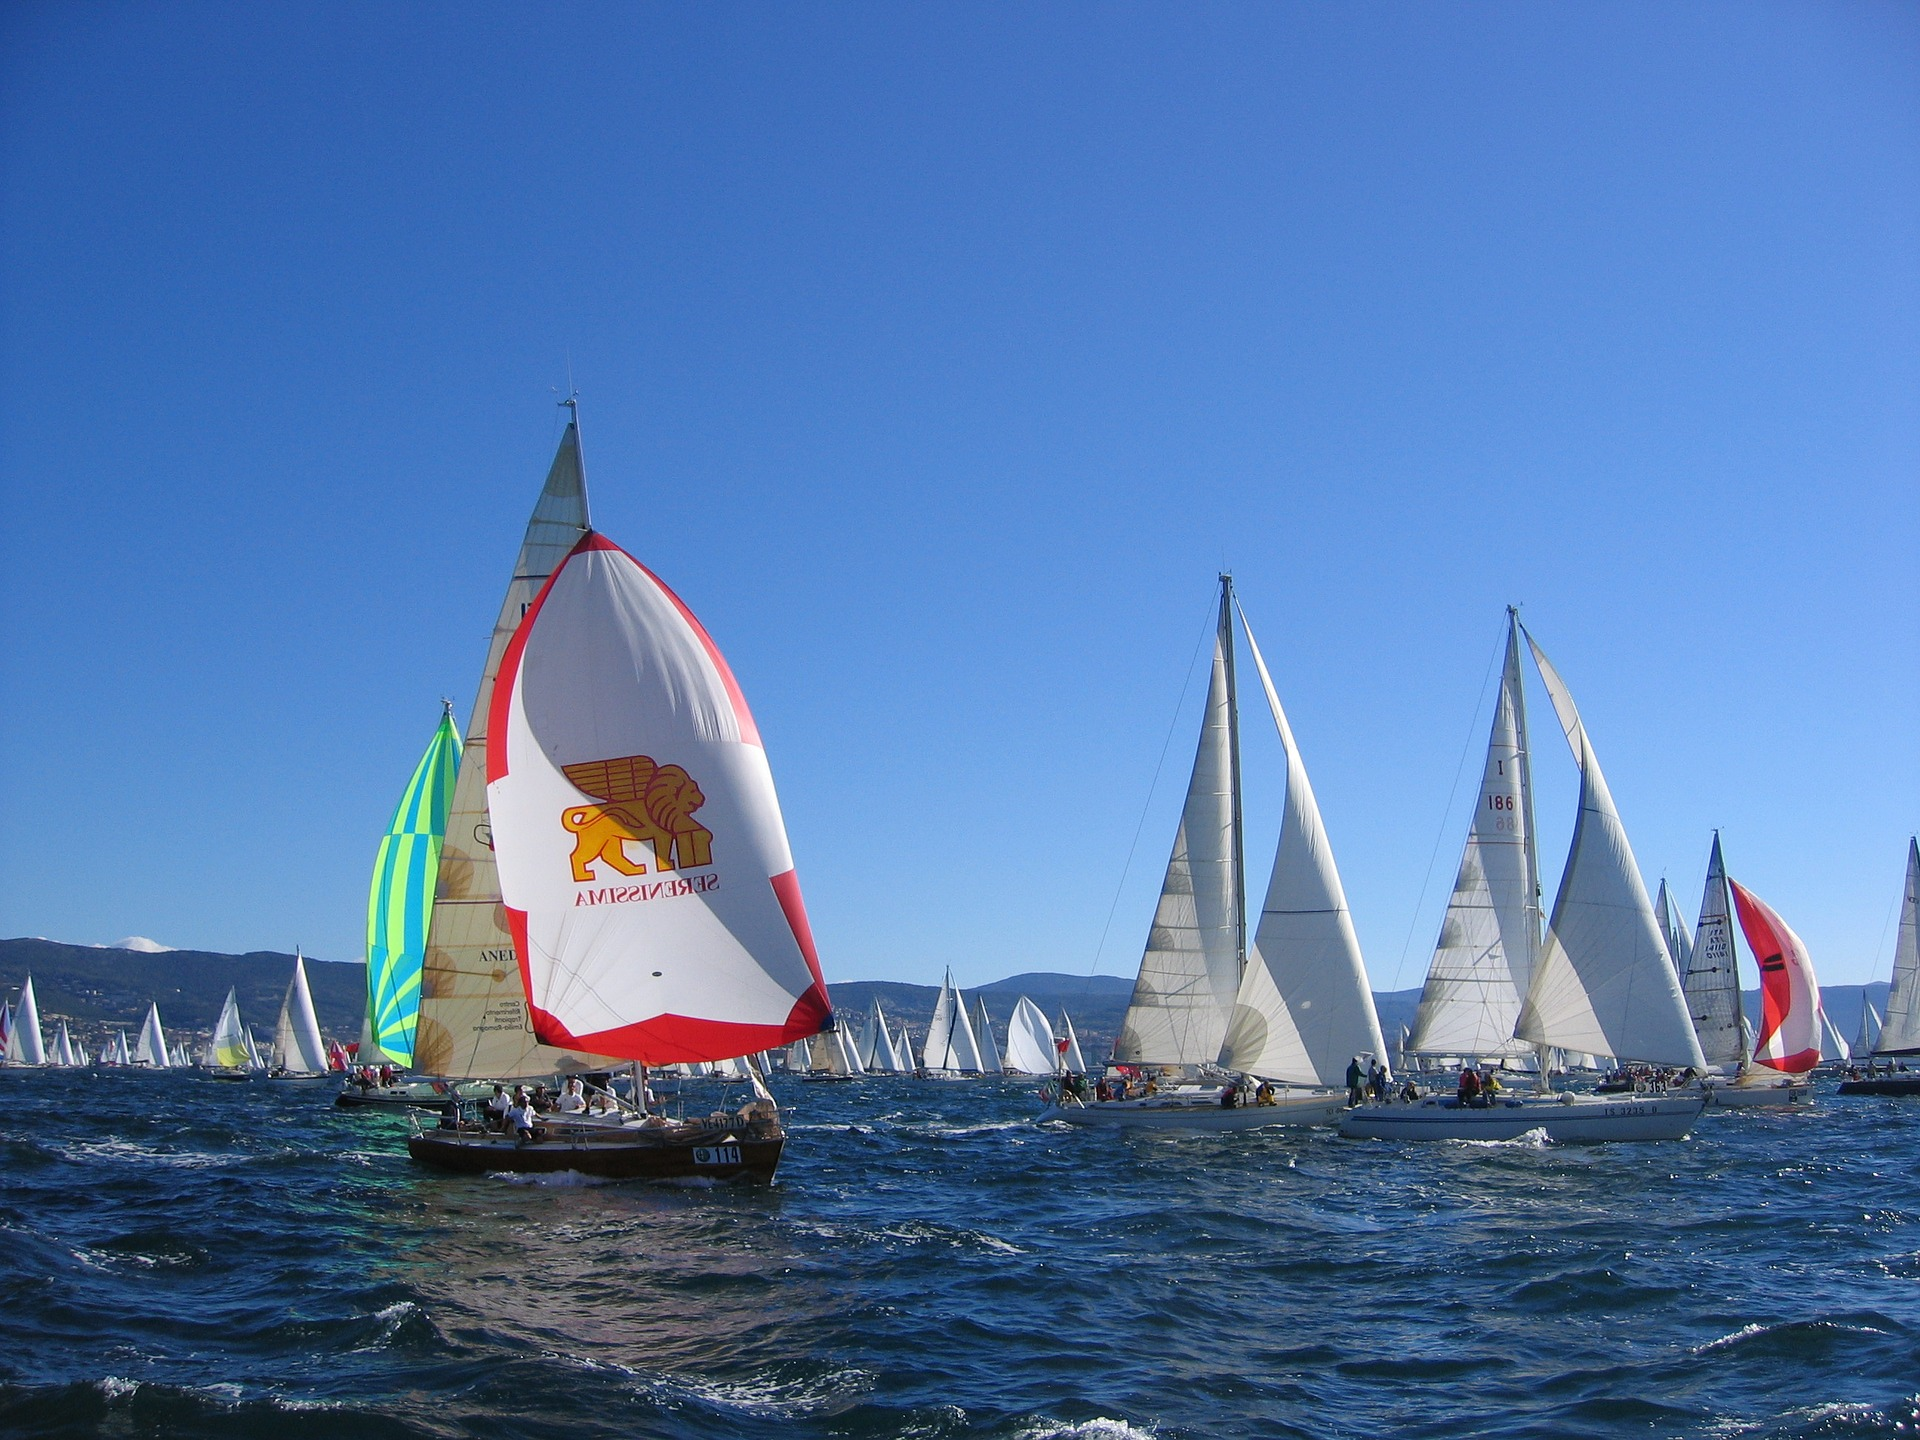 Boats racing in the Solent on a sunny day